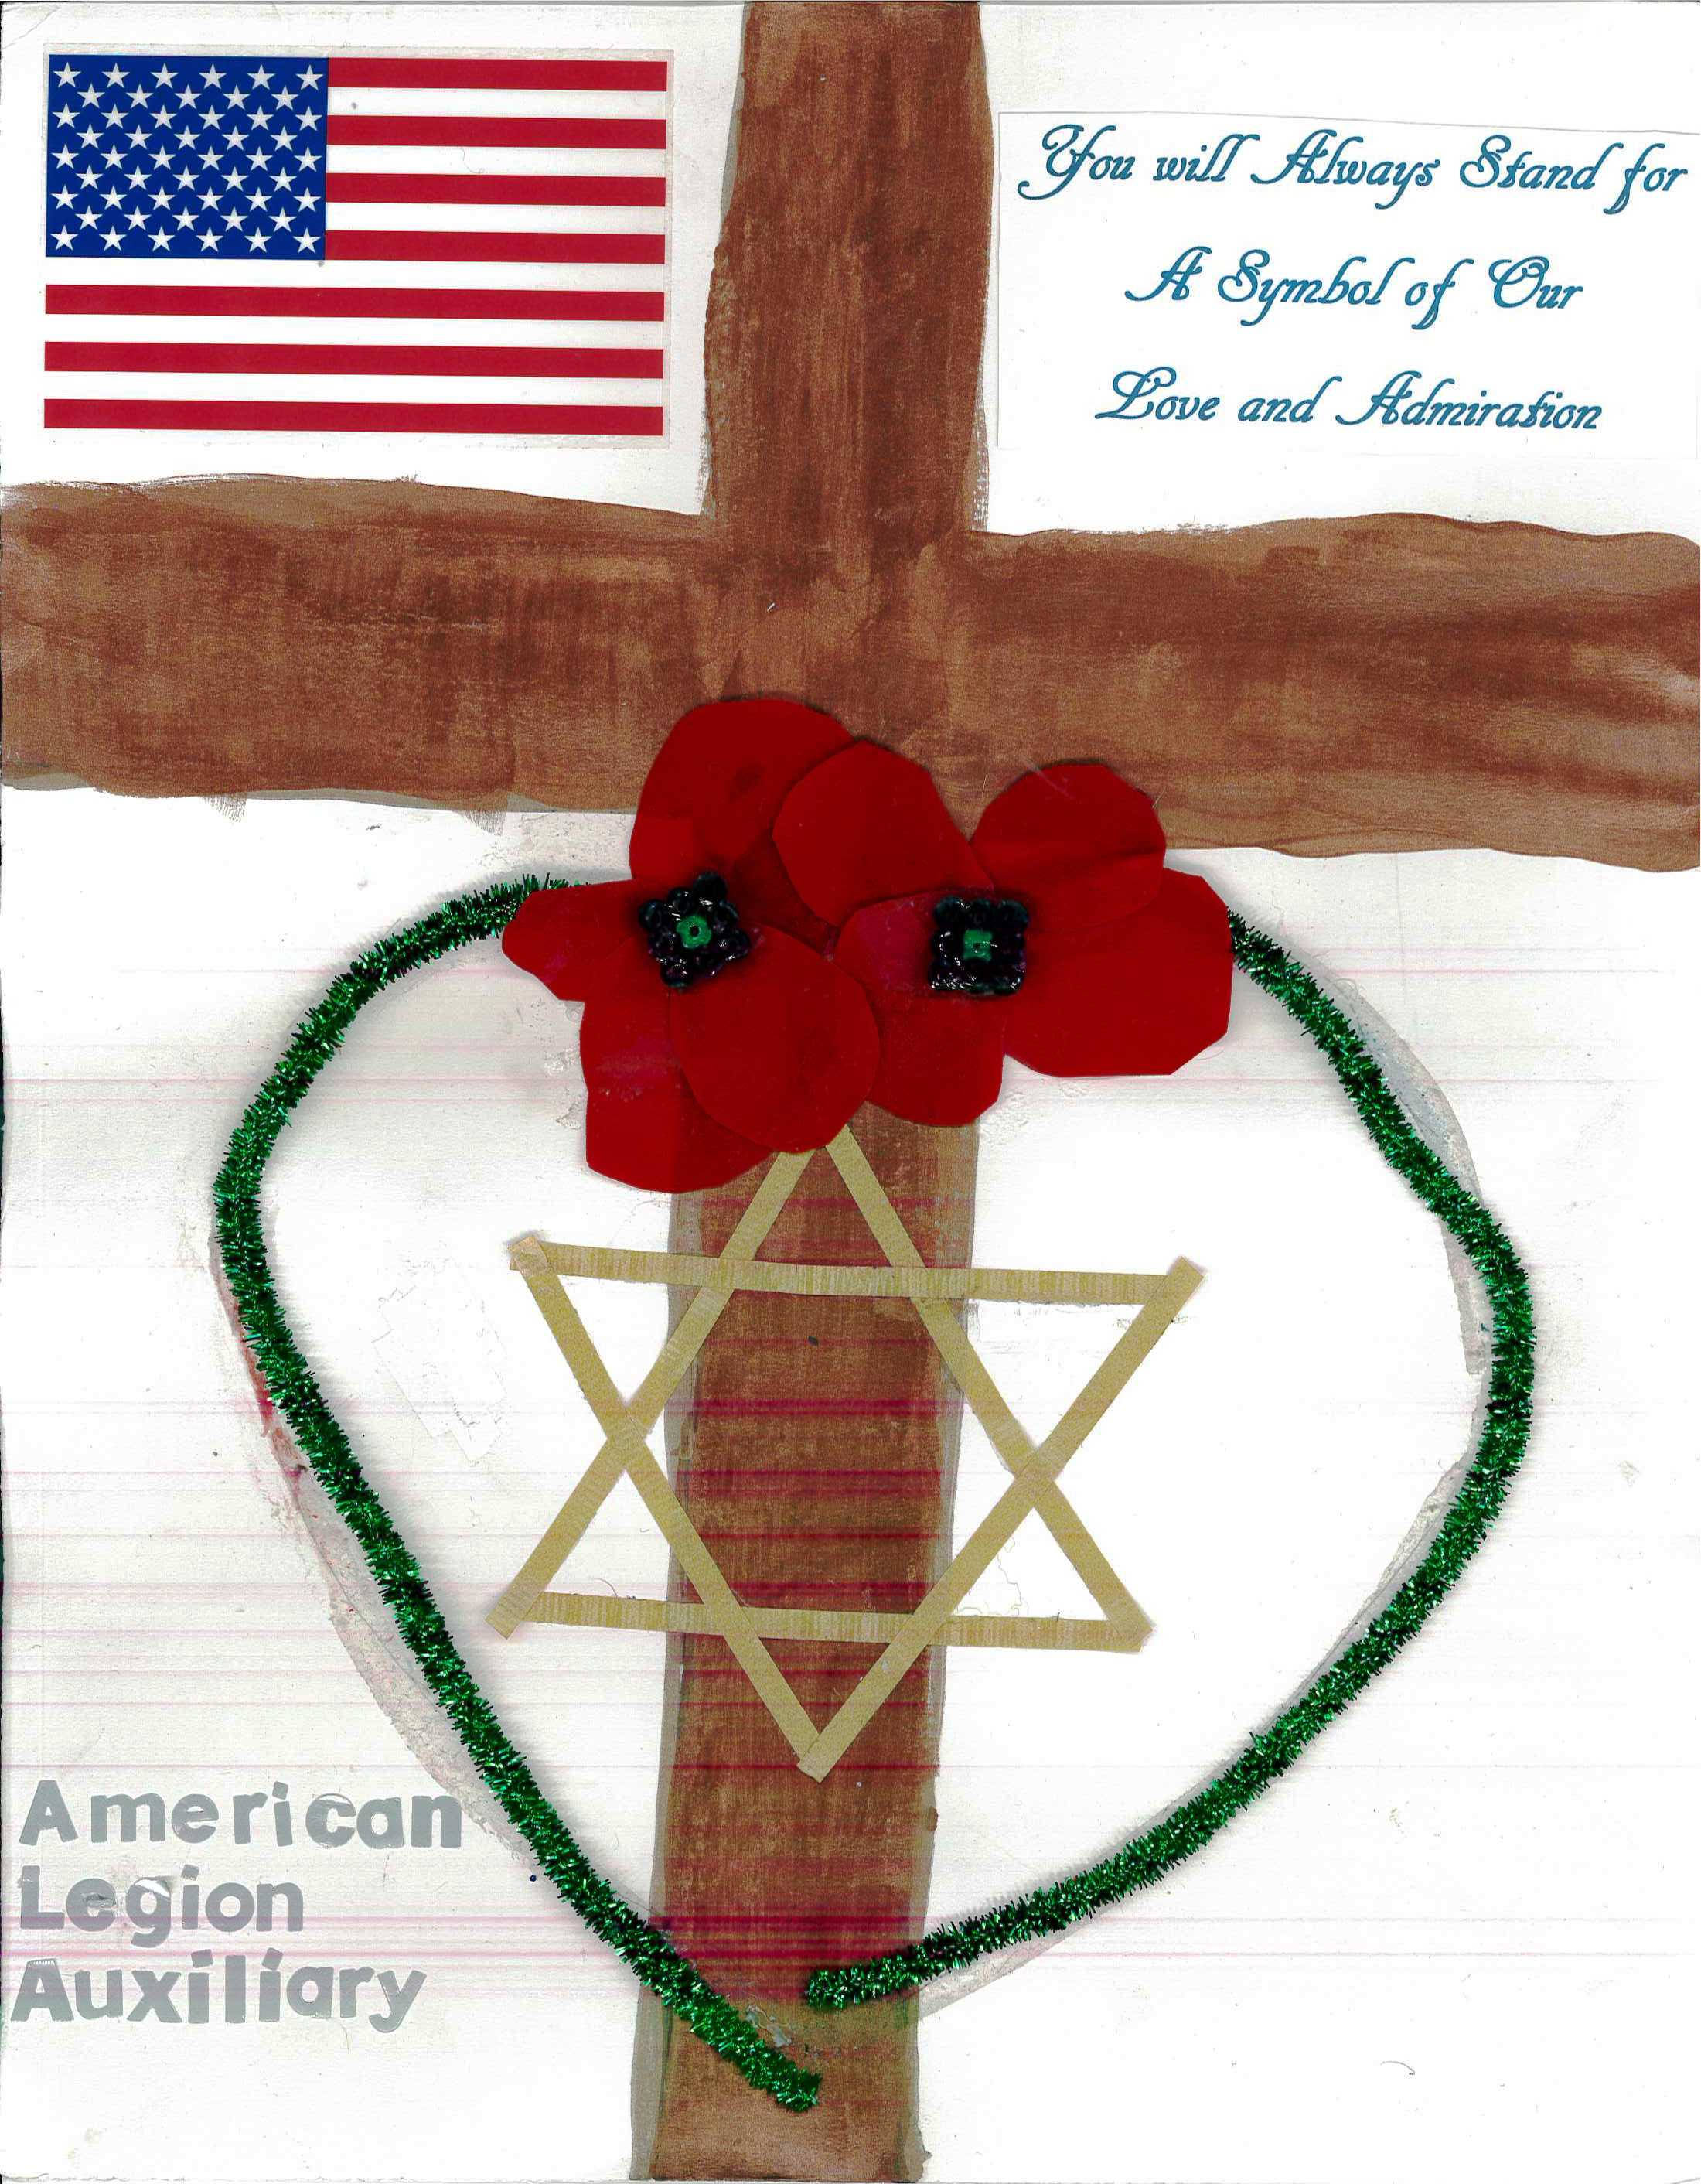 Drawn poppy american legion Auxiliary Poster Class Winners American